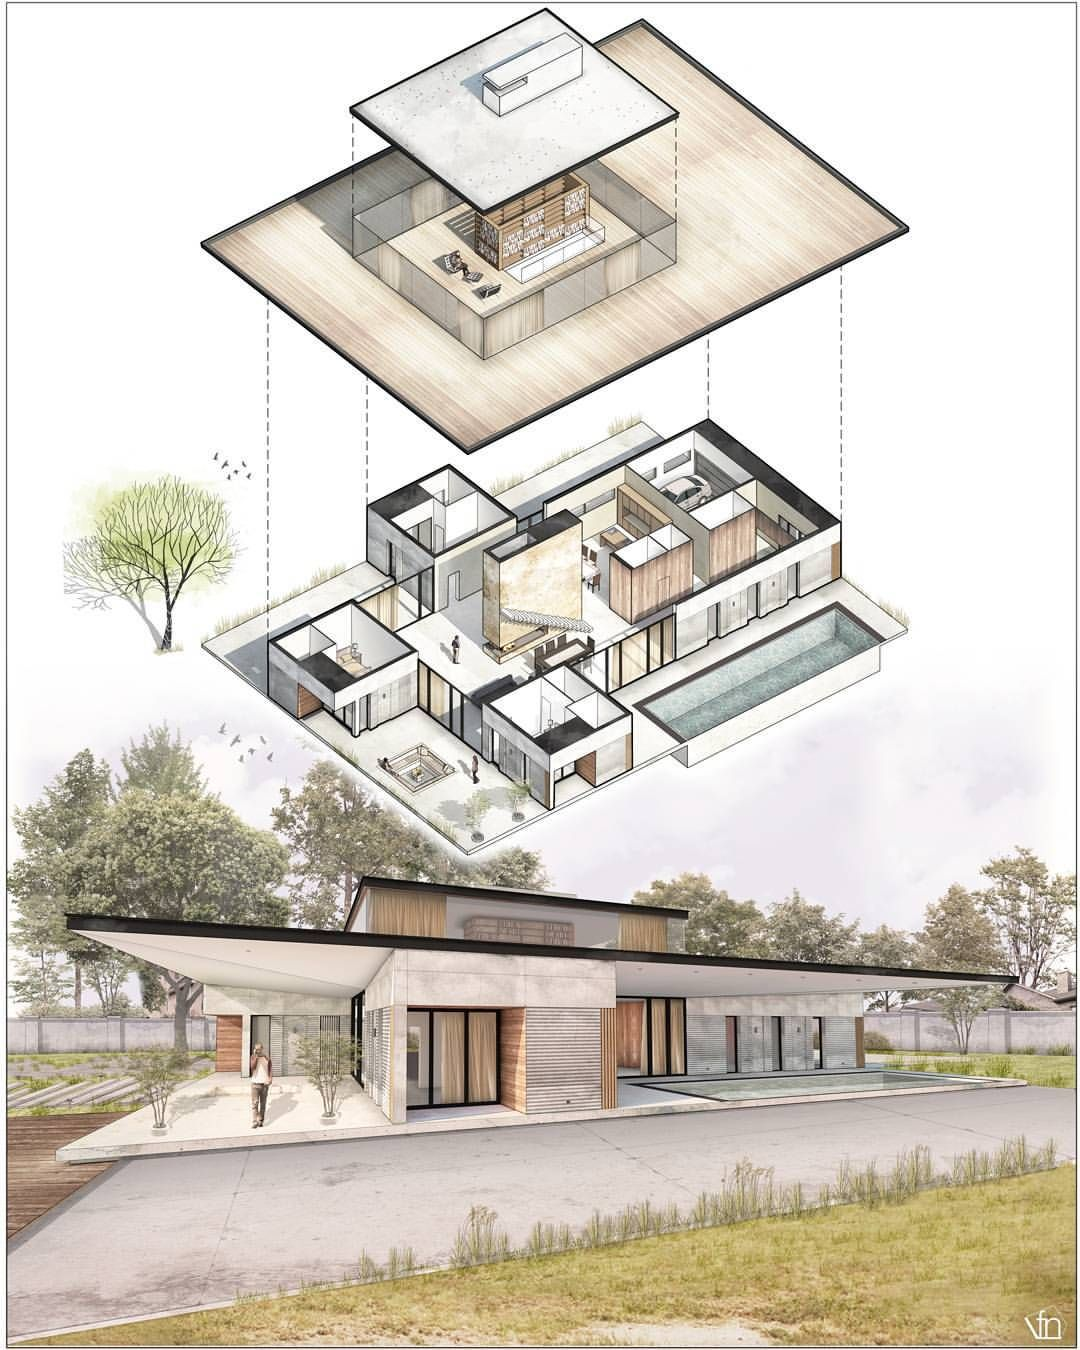 See This Instagram Photo By Fer Neyra 6 166 Likes Architecture Sketch Architecture Concept Diagram Architecture